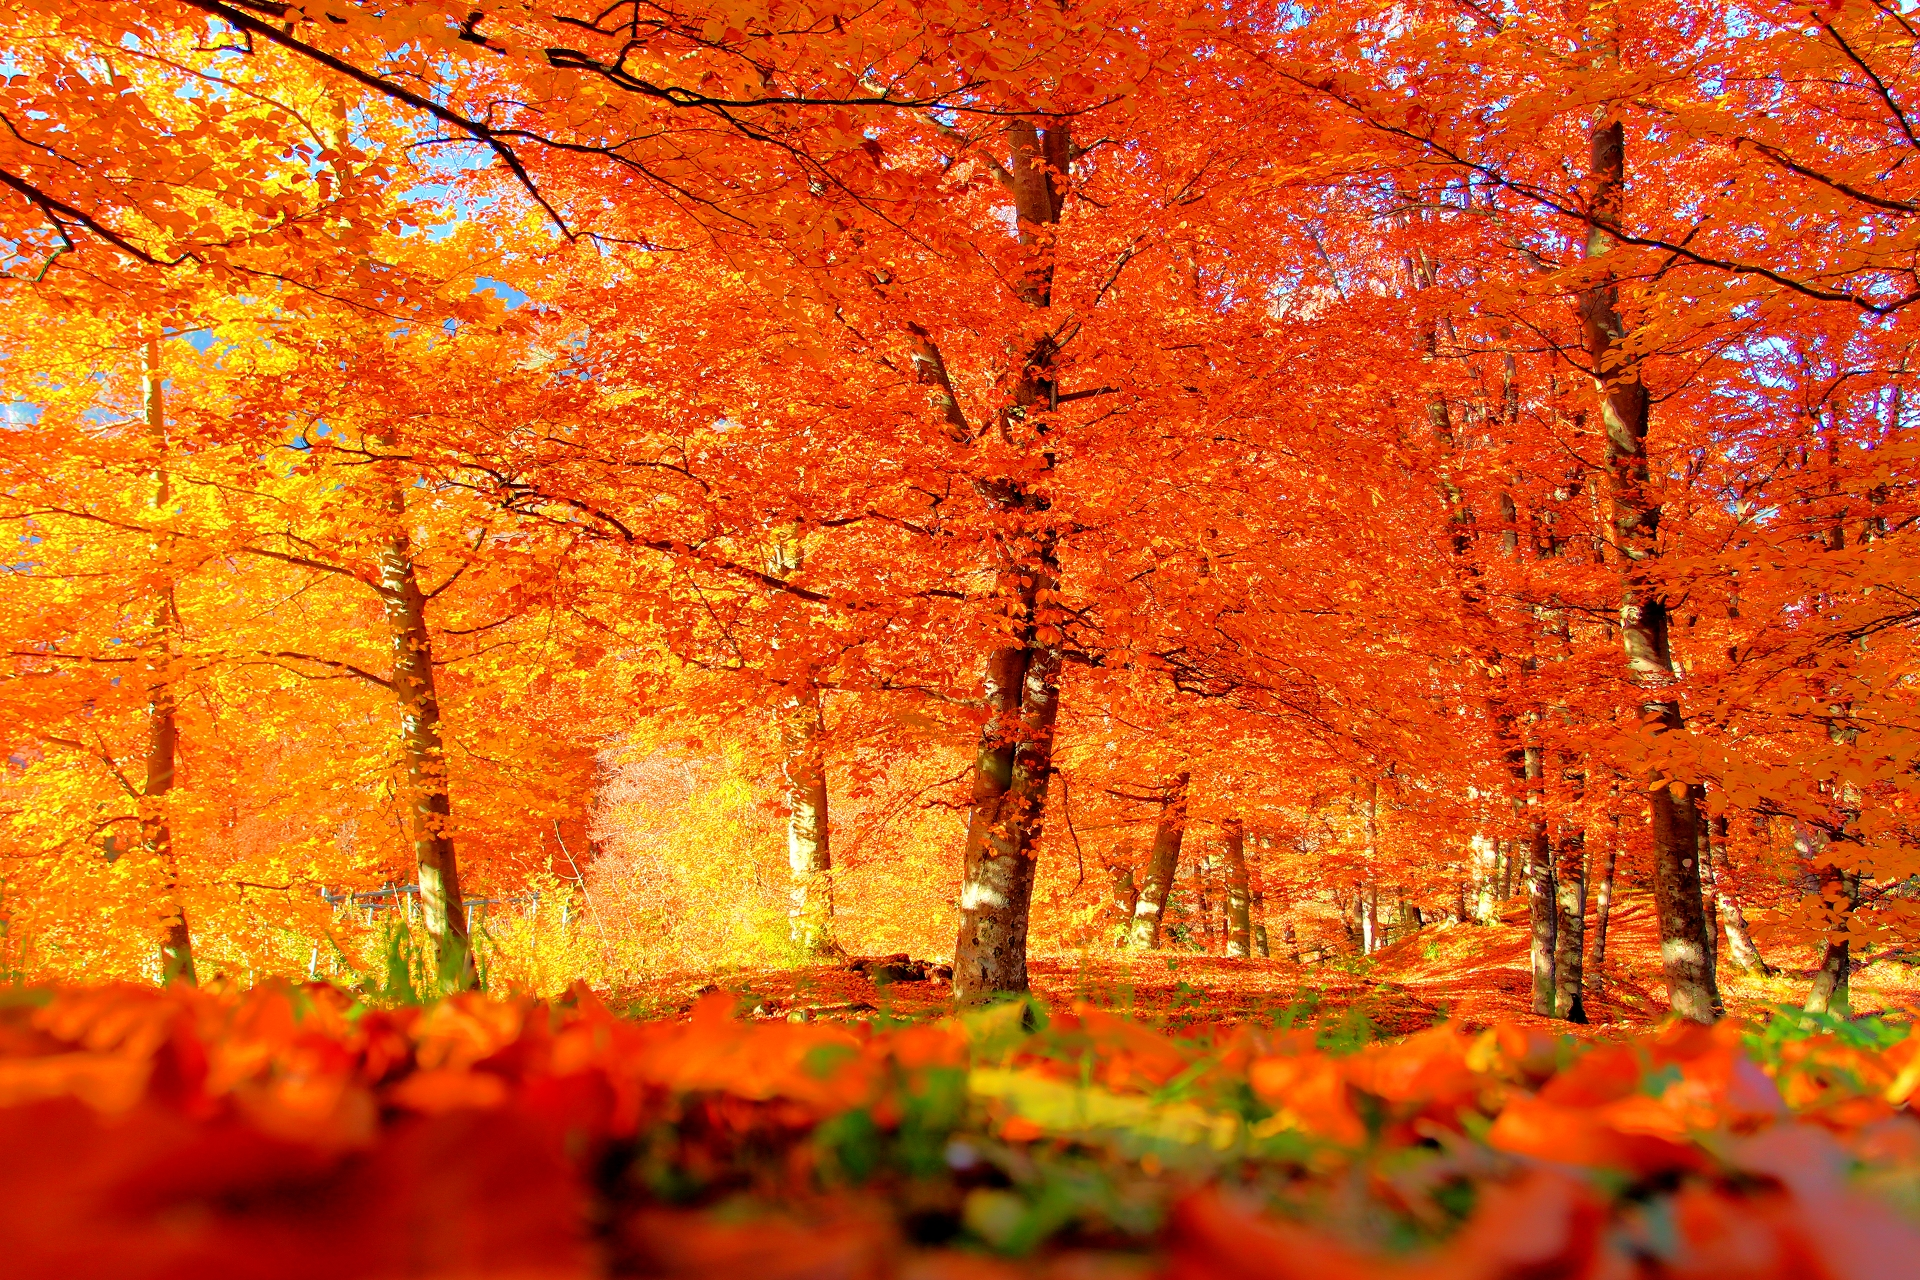 Autumn Images Backgrounds Group (40+)